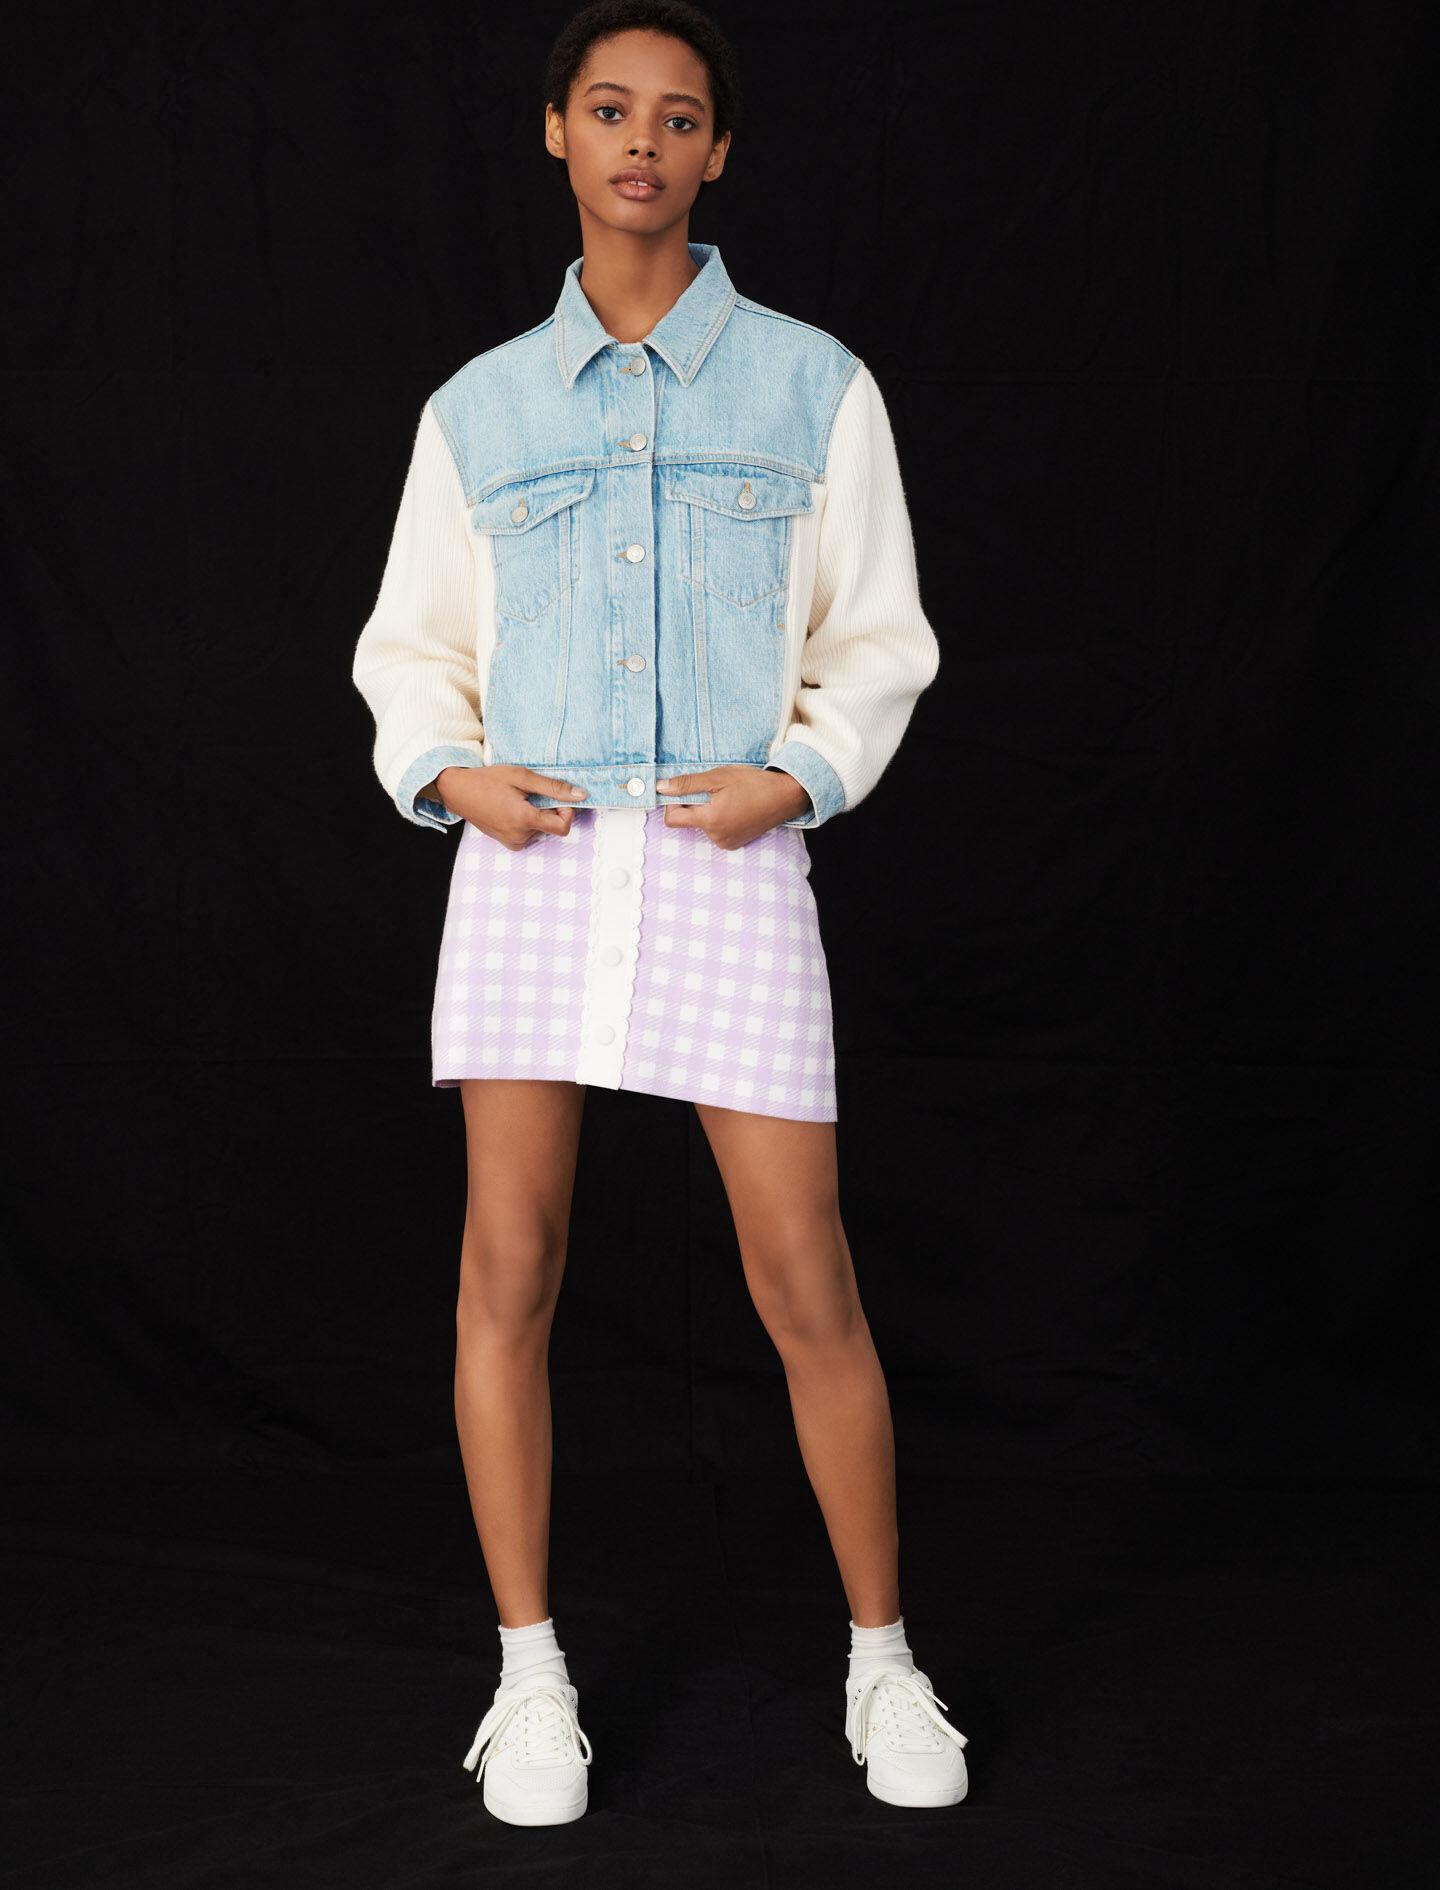 MIXED MATERIAL KNIT AND DENIM JACKET 2